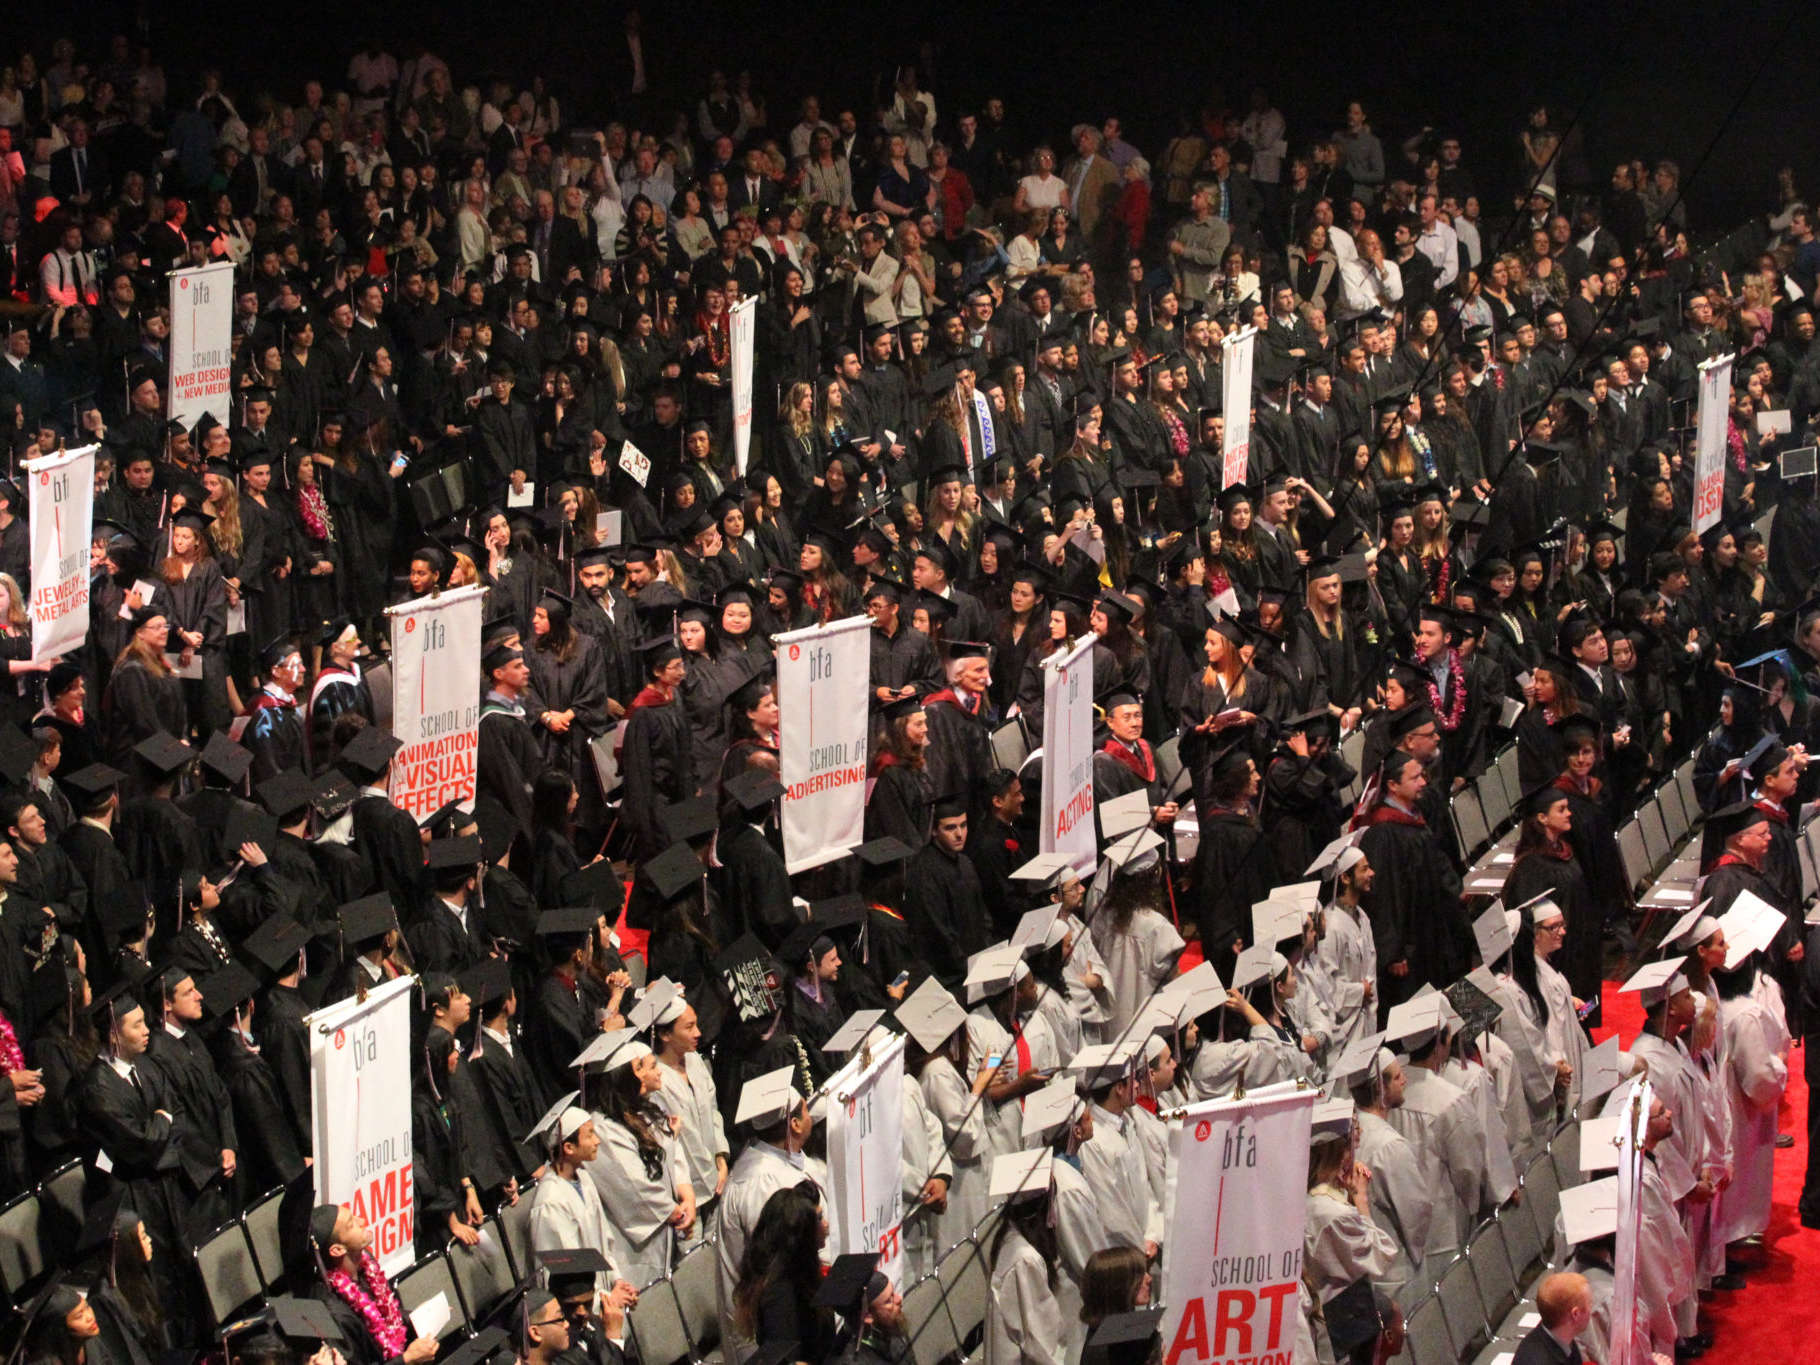 Academy of Art Commencement Exercises